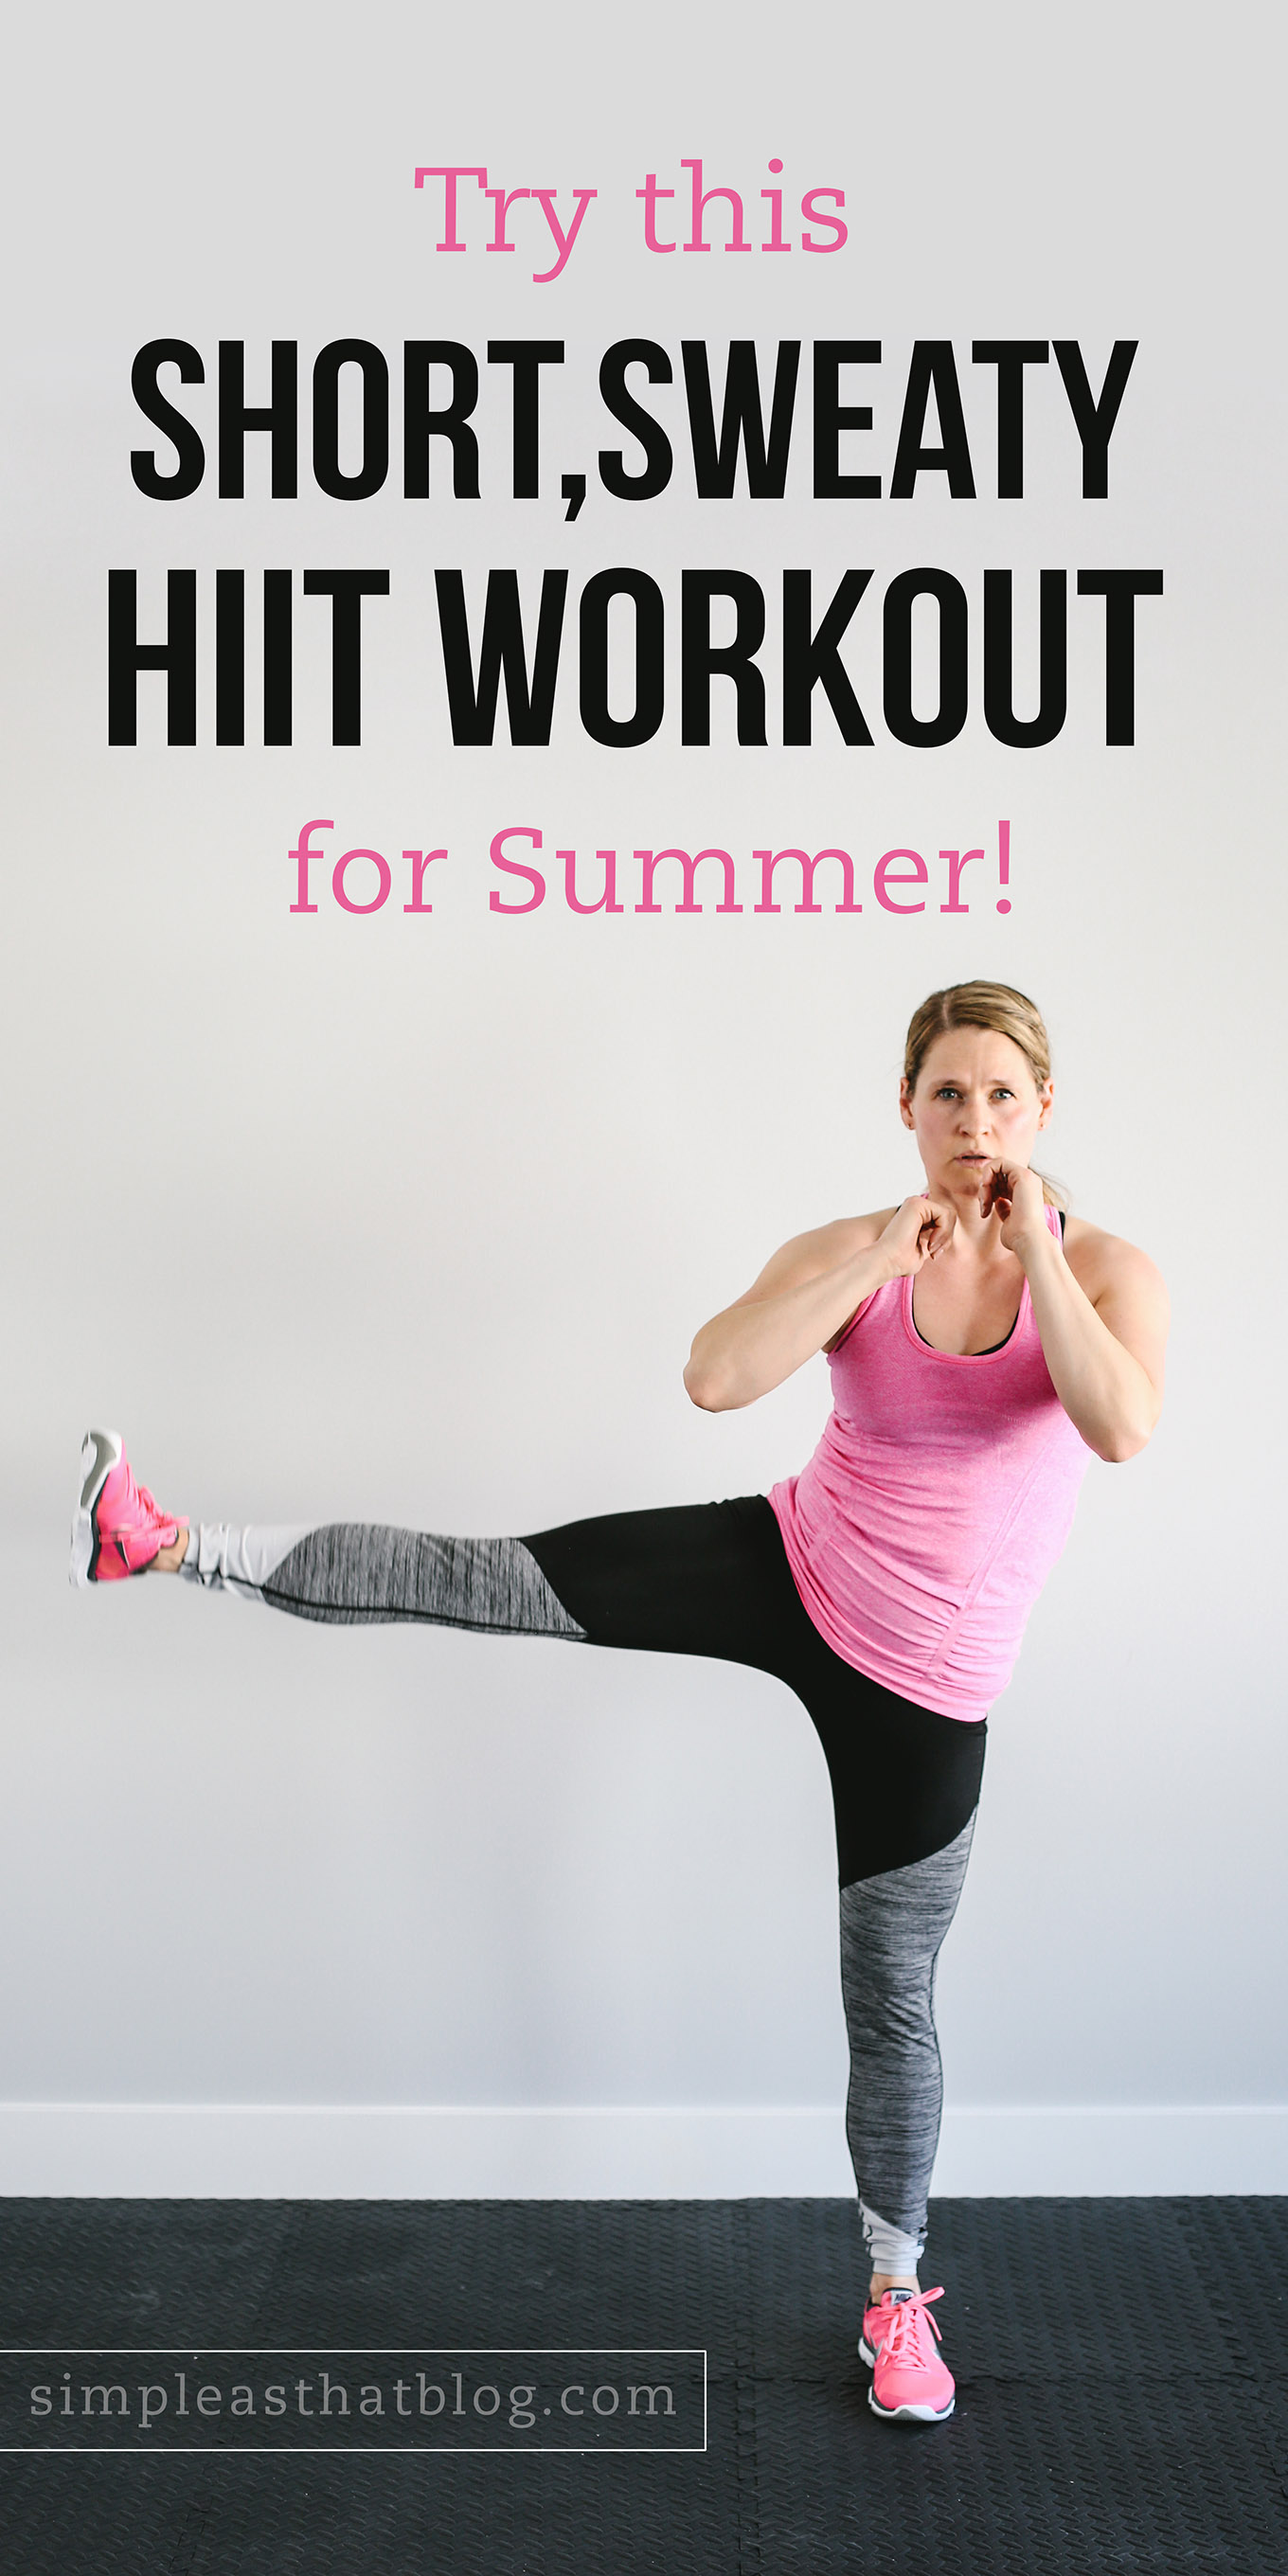 Summer is for parks, pools, and picnics. But you can still stay active and stick to healthy habits with today's 16-minute HIIT workout! It's short, sweaty and super fun, so you can get back to enjoying the sunshine with your kids!